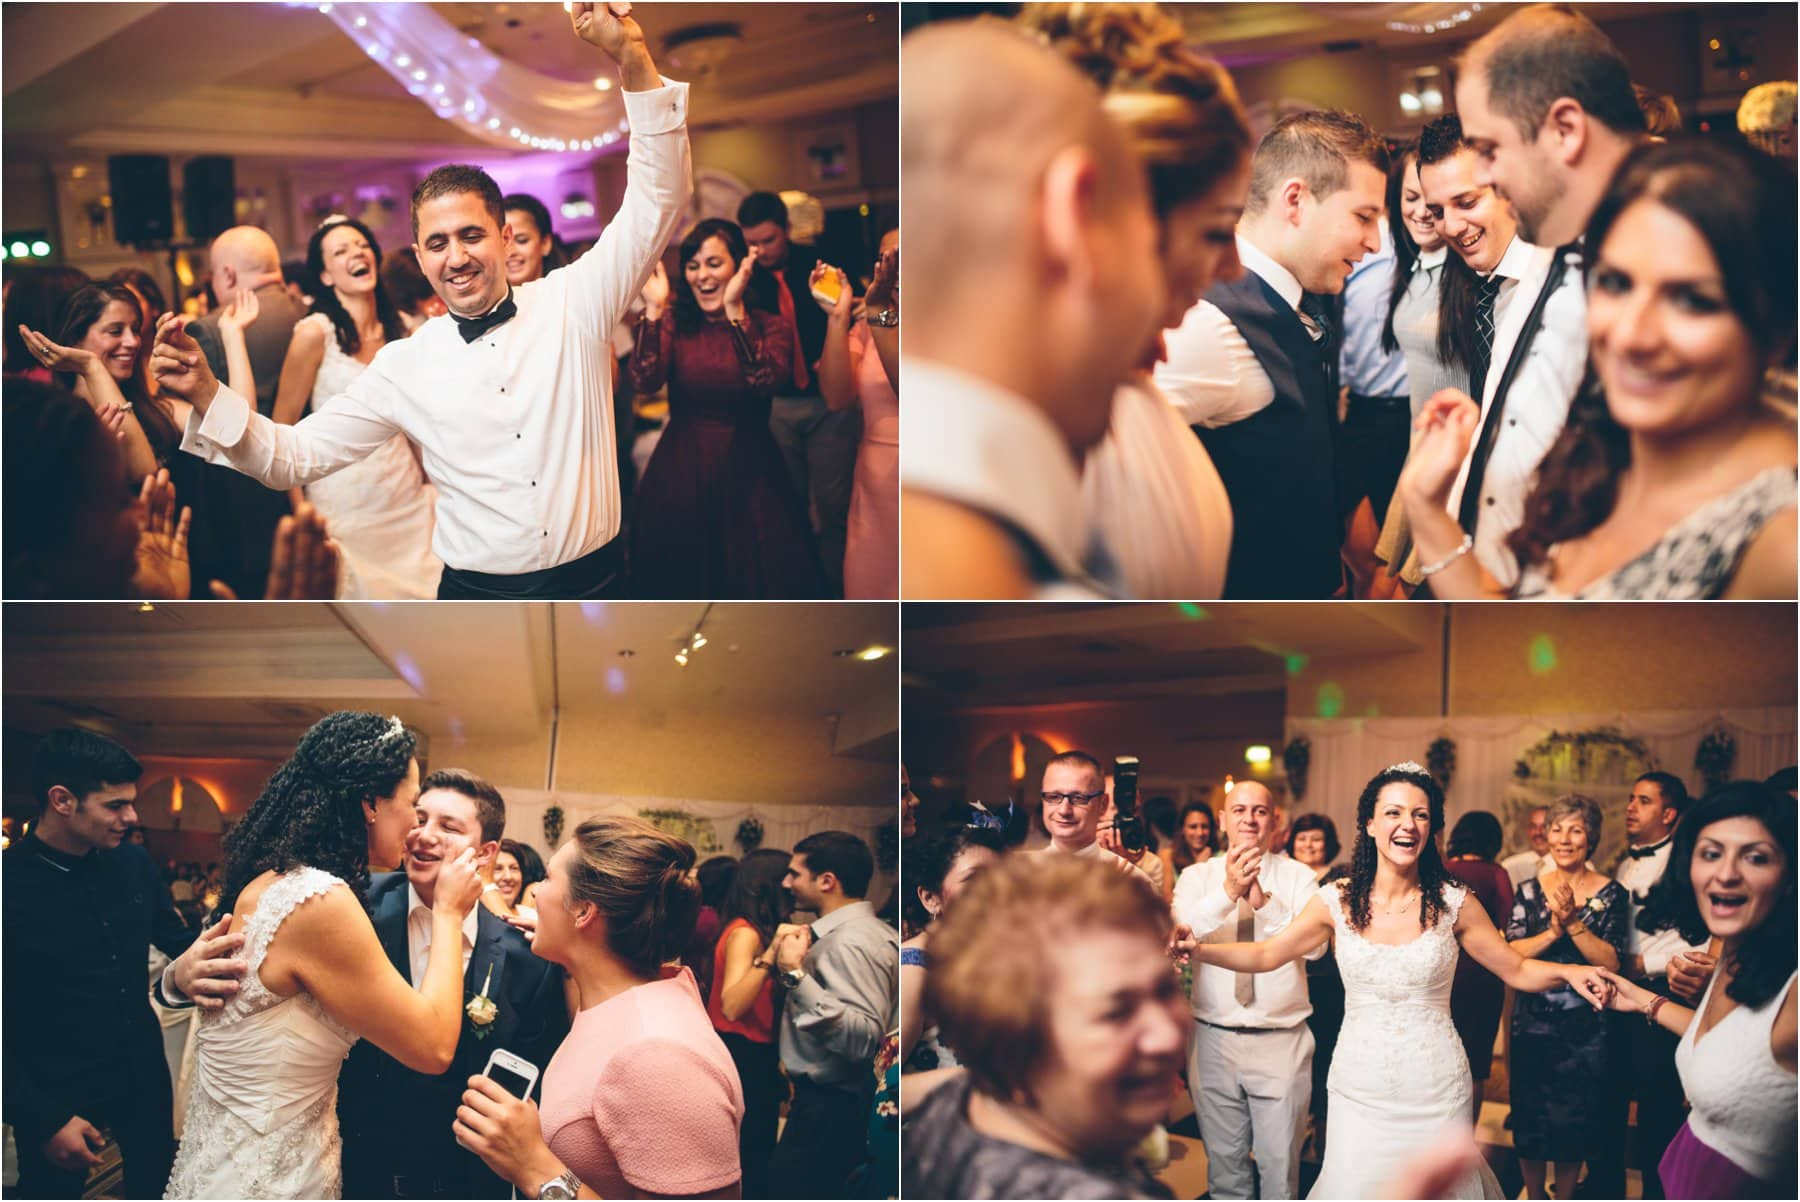 Midland_Manchester_Wedding_Photography_0112